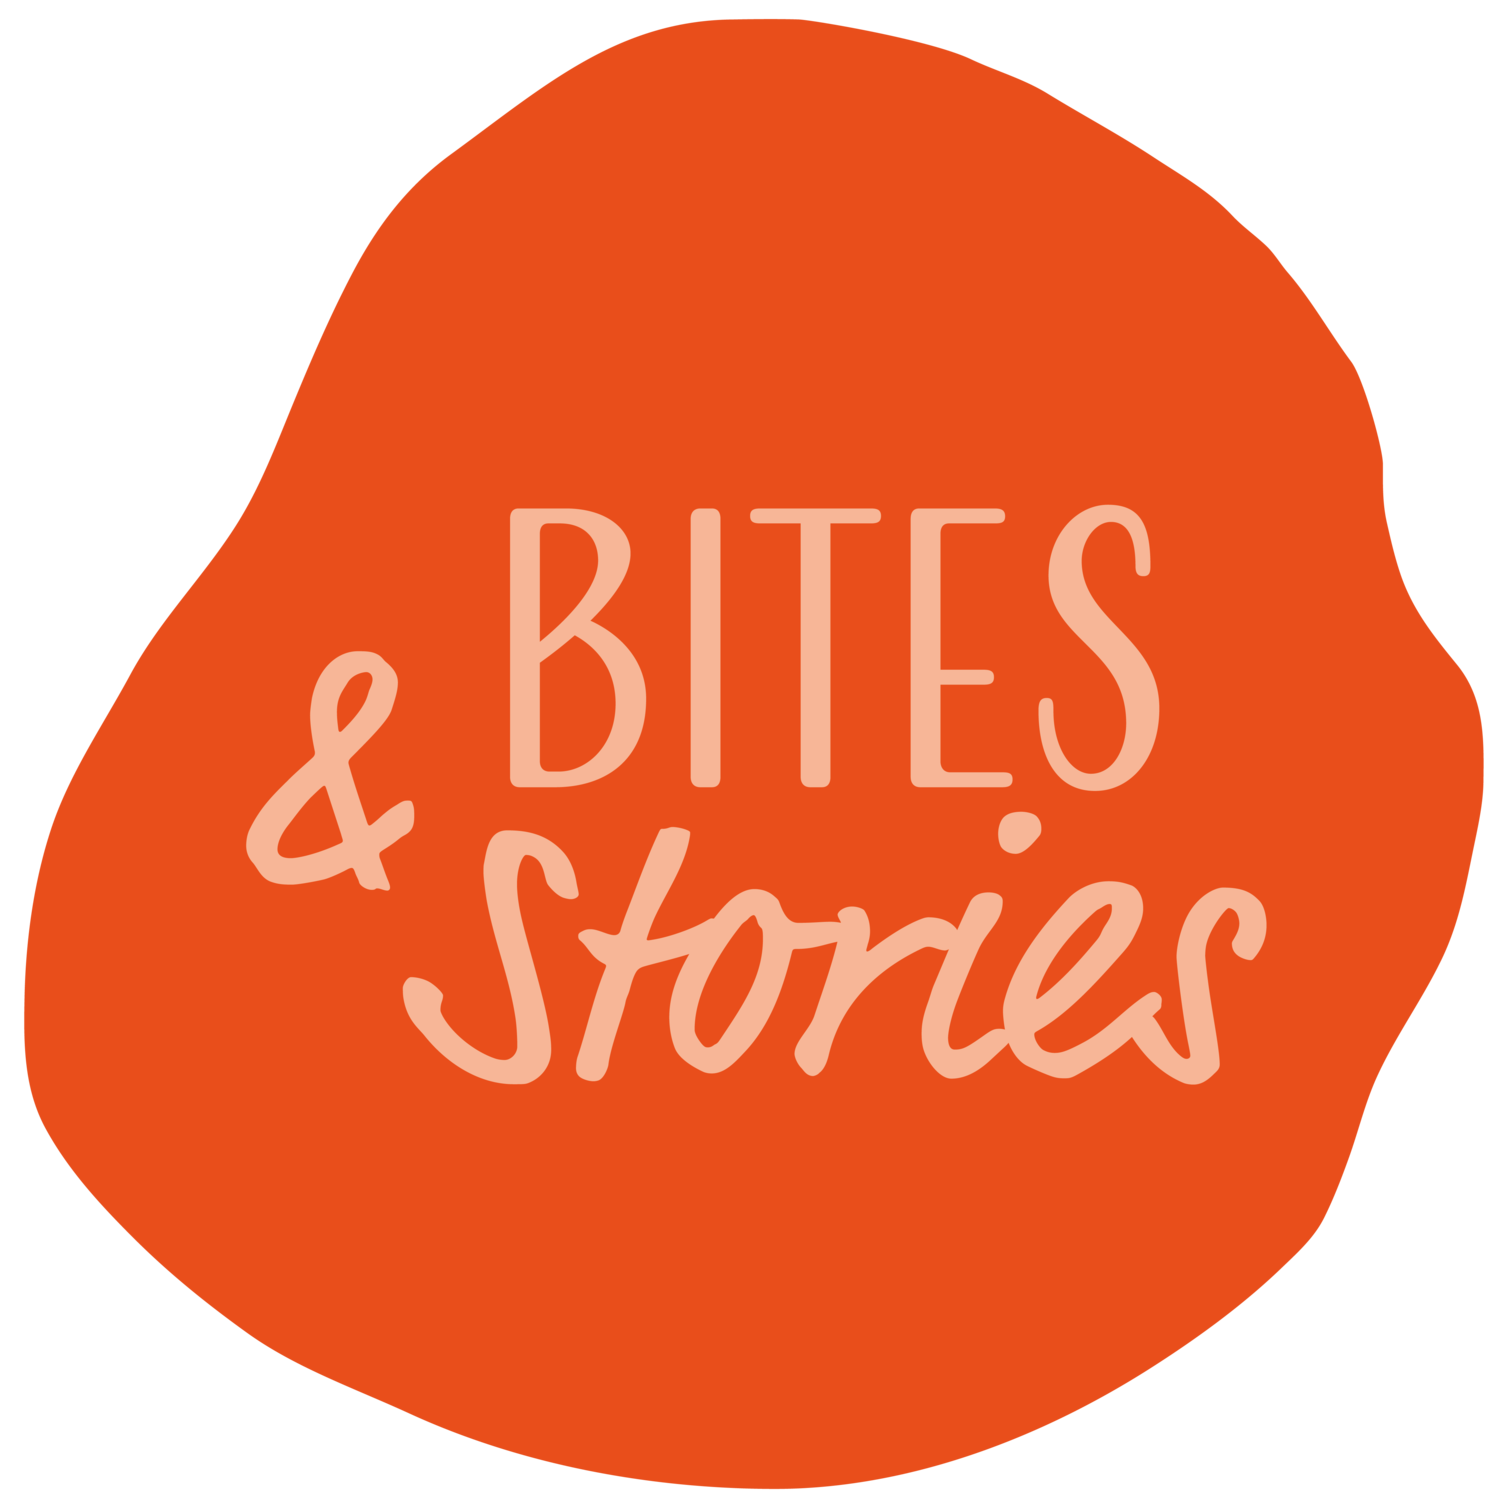 Bites and stories voucher. Gift clipart love gift